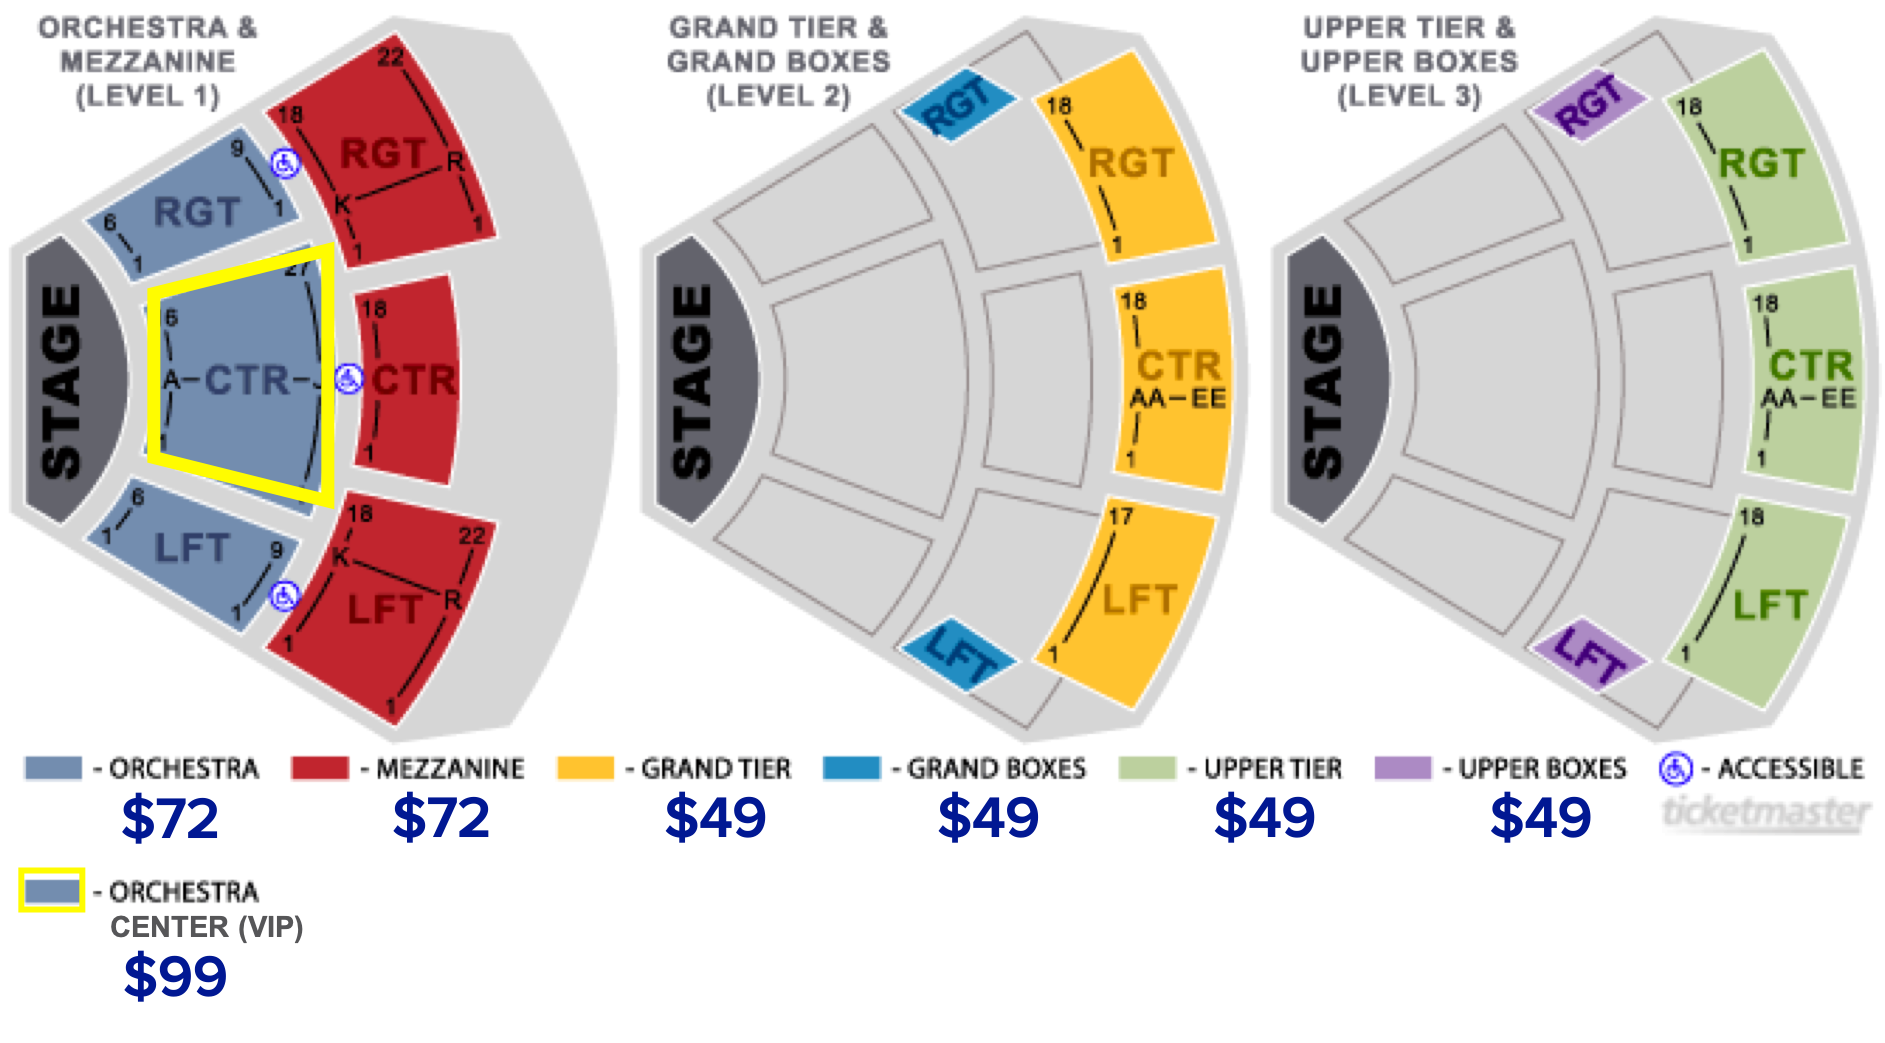 Ferrara Theater Seating Pricing.png